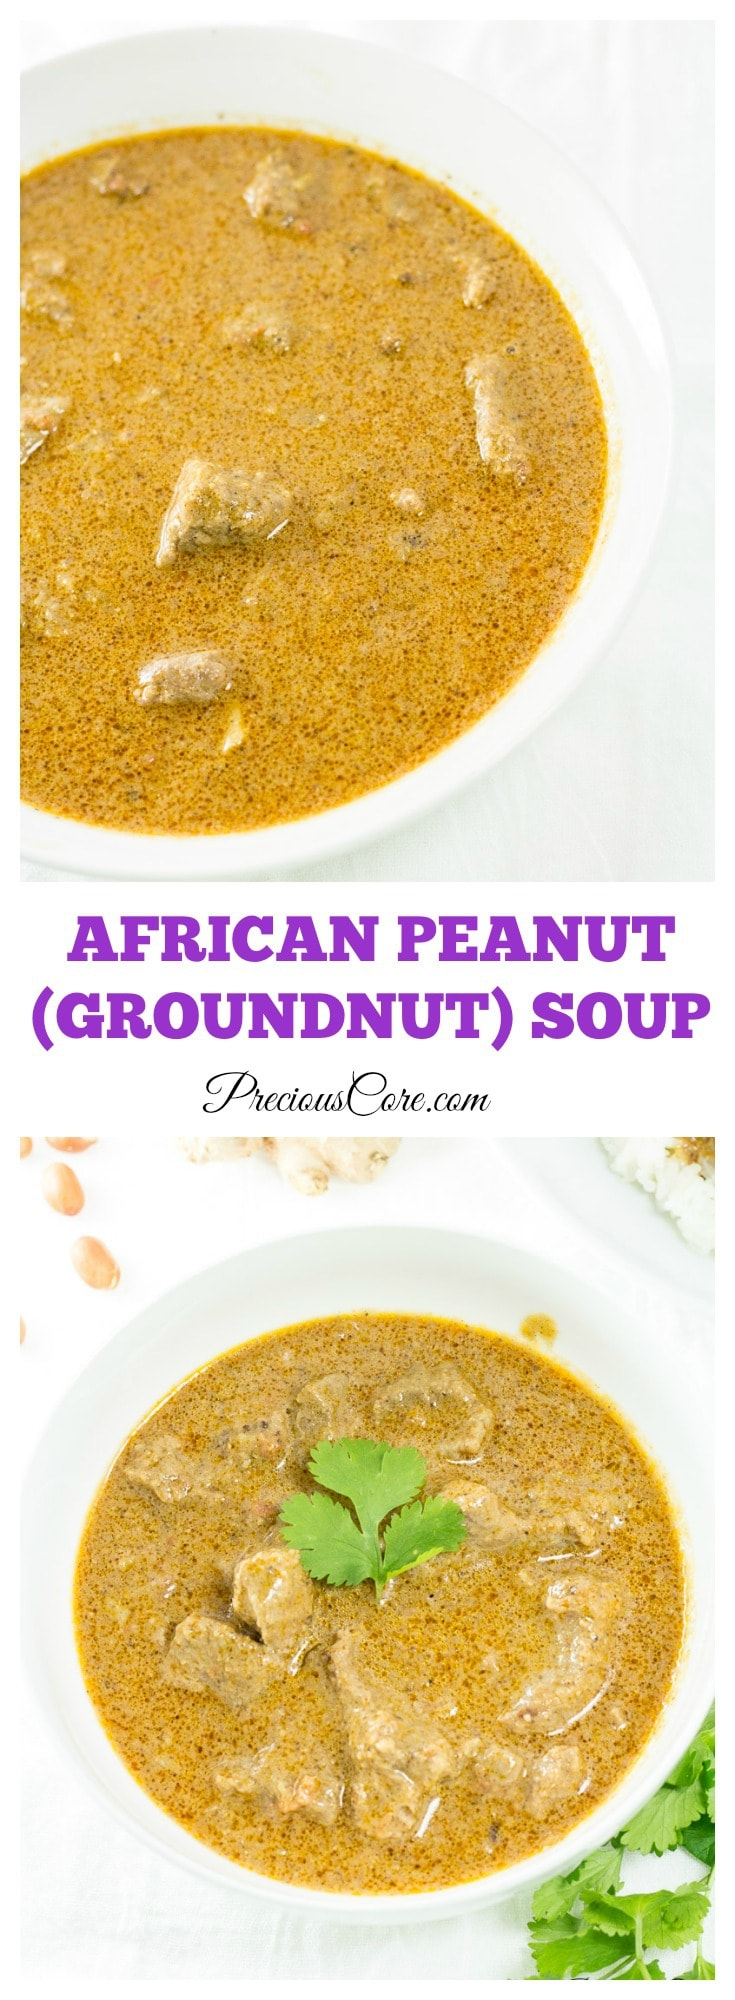 Peanut (Groundnut) Soup Recipe